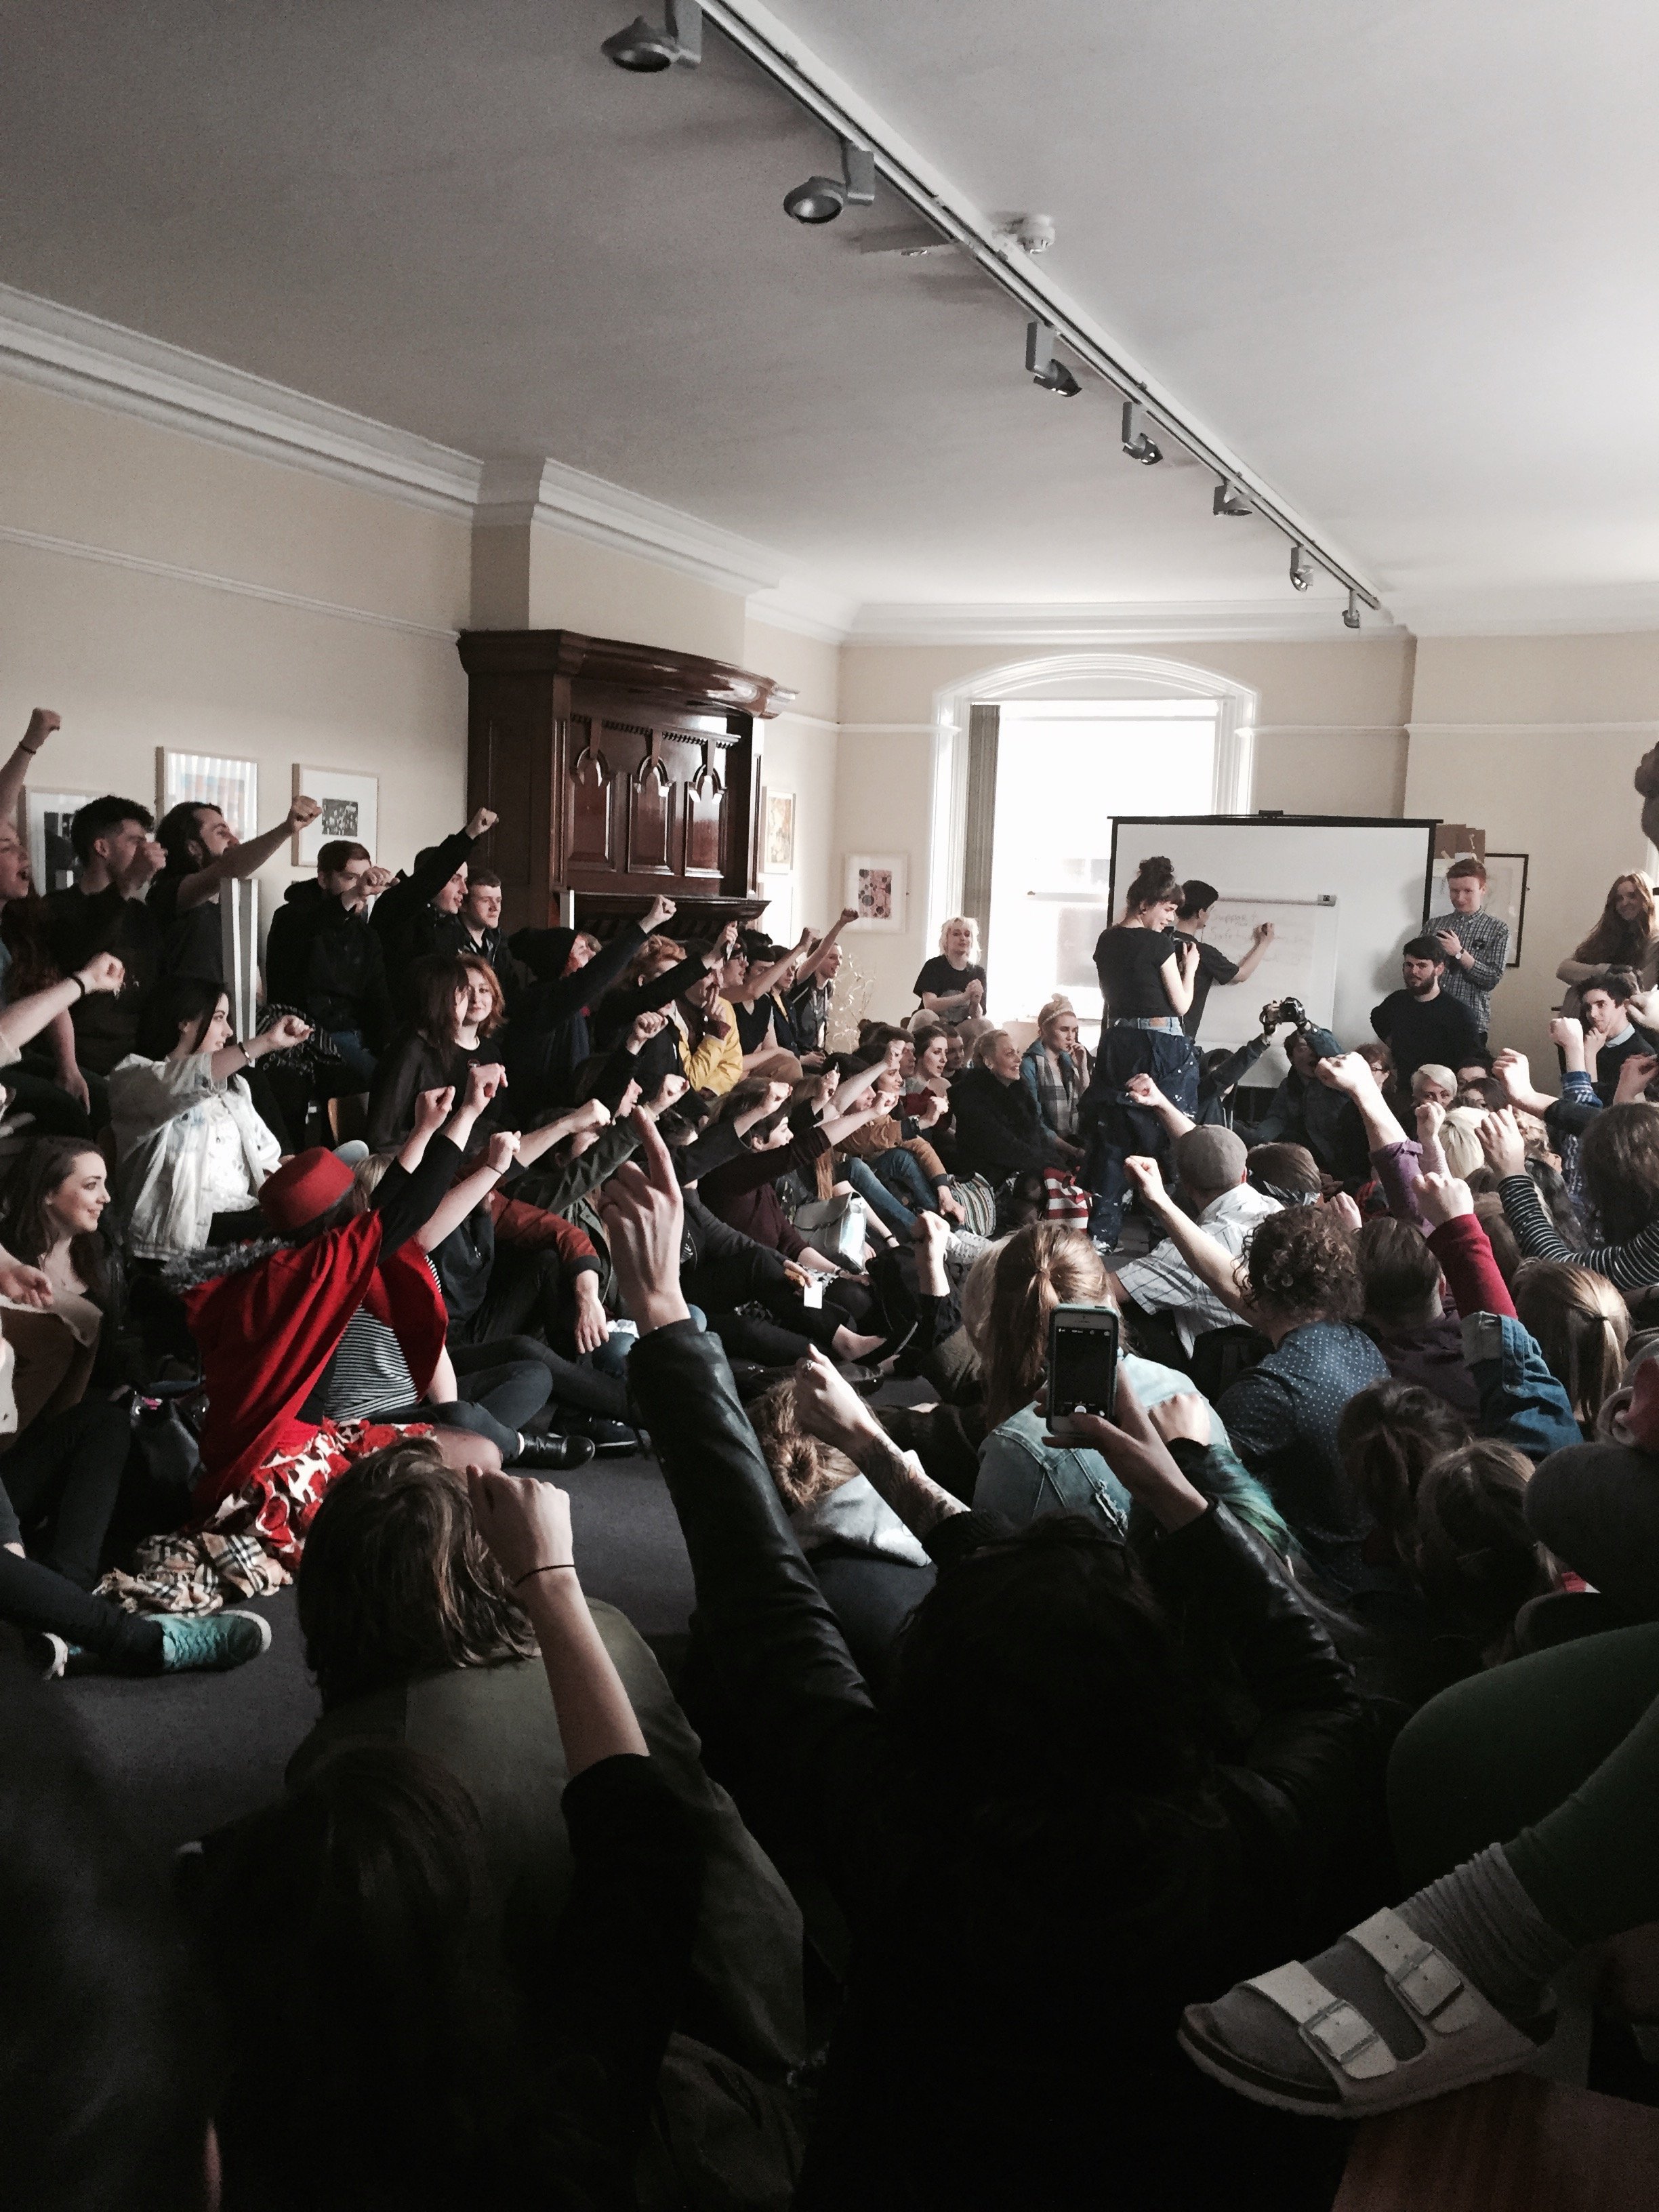 The board room at NCAD is filled to capacity as students take part in an occupation